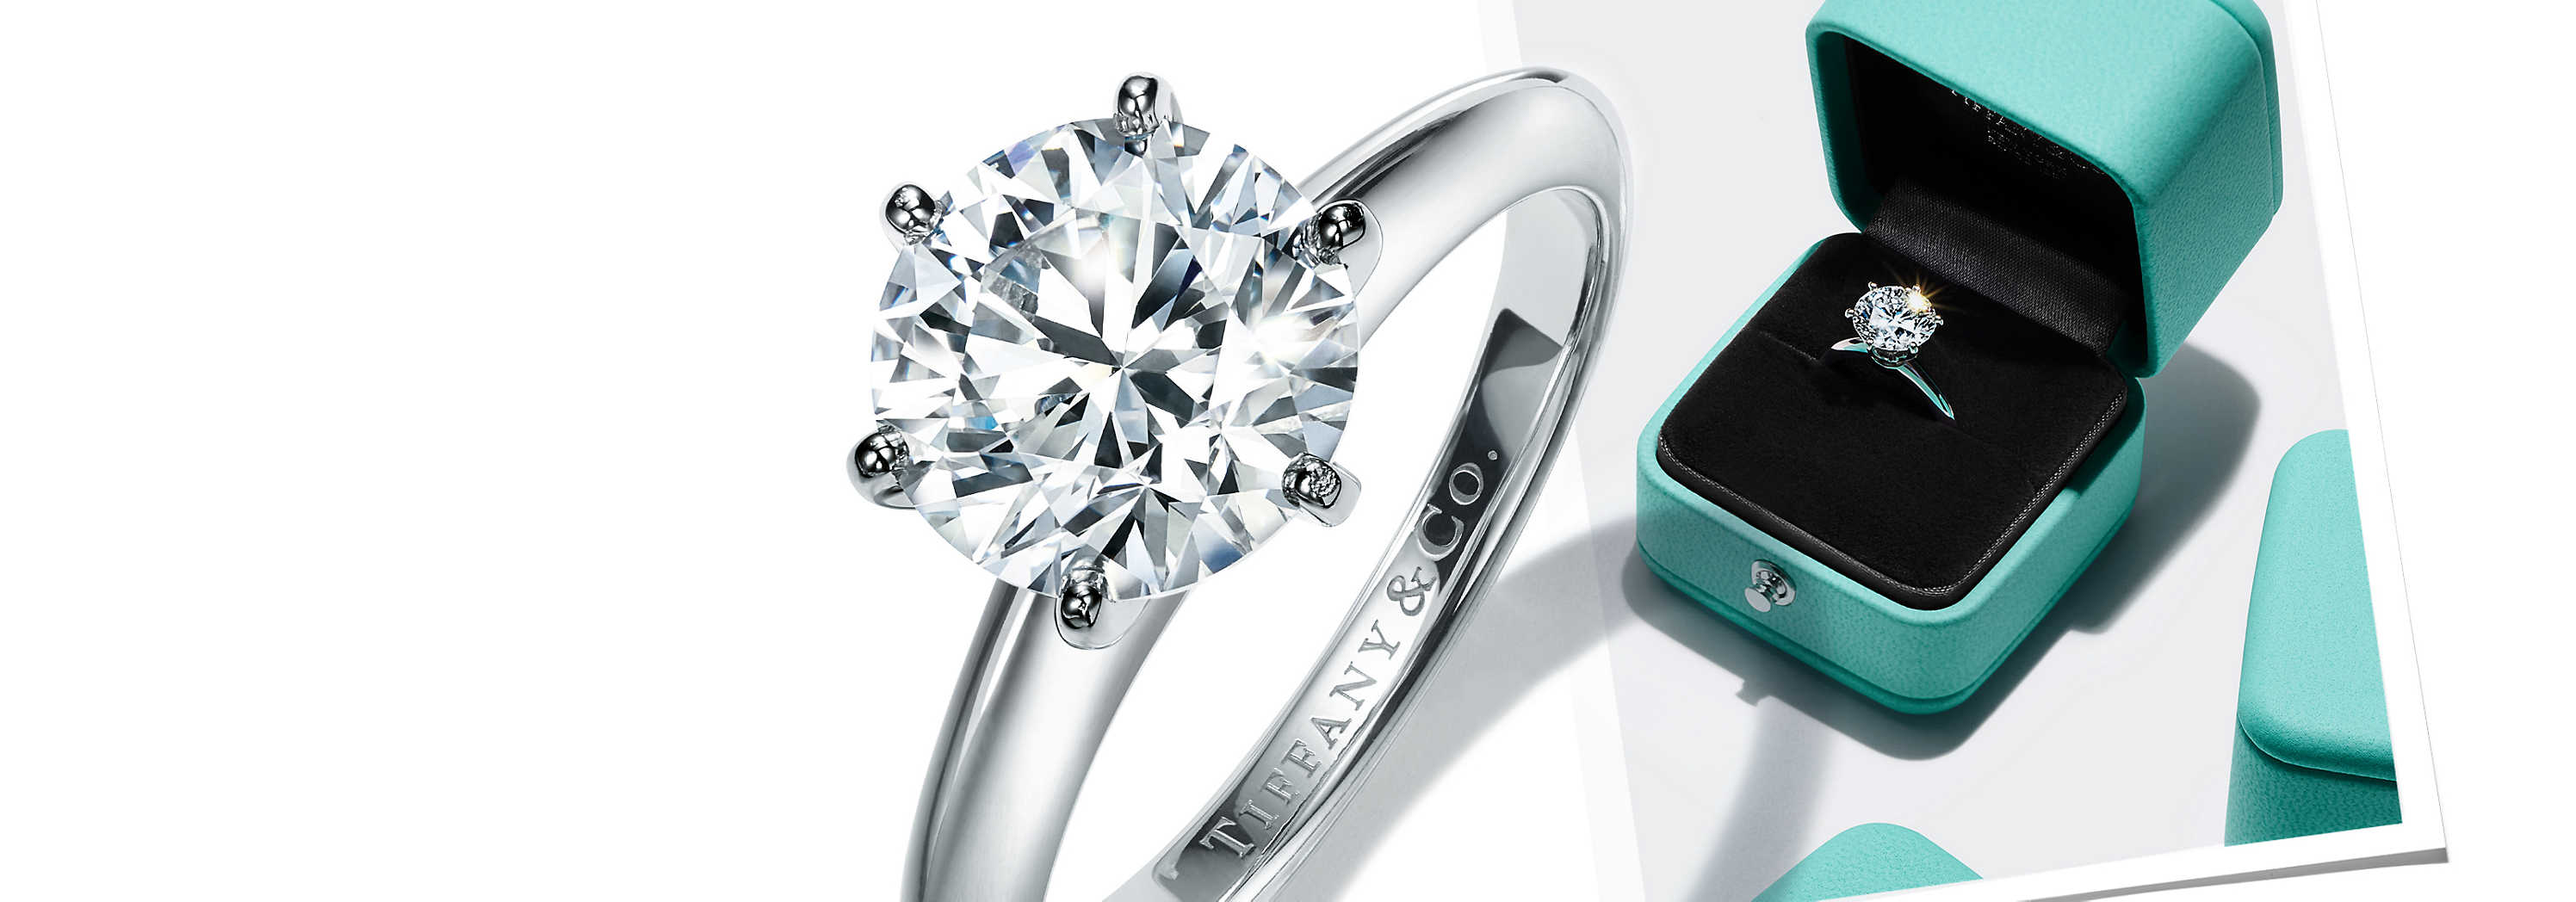 Tiffany co official luxury. Jewel clipart expensive ring